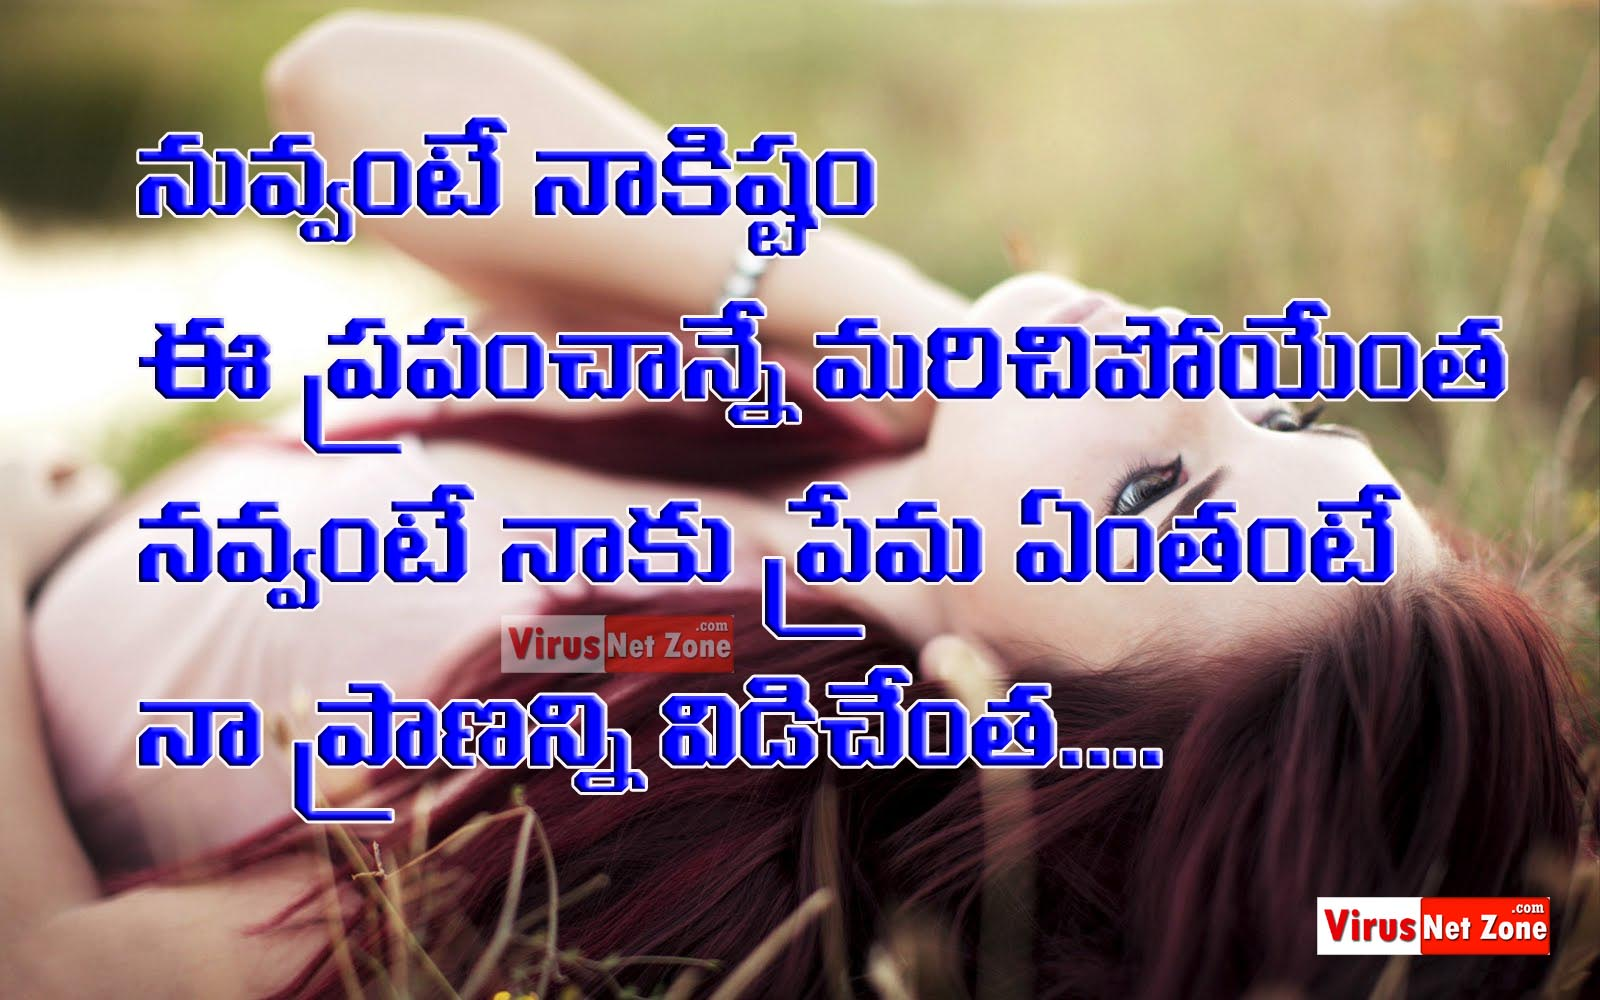 Telugu Love Quotes Interesting Real Heart Touching Love Quotes Images In Telugu  Virus Net Zone